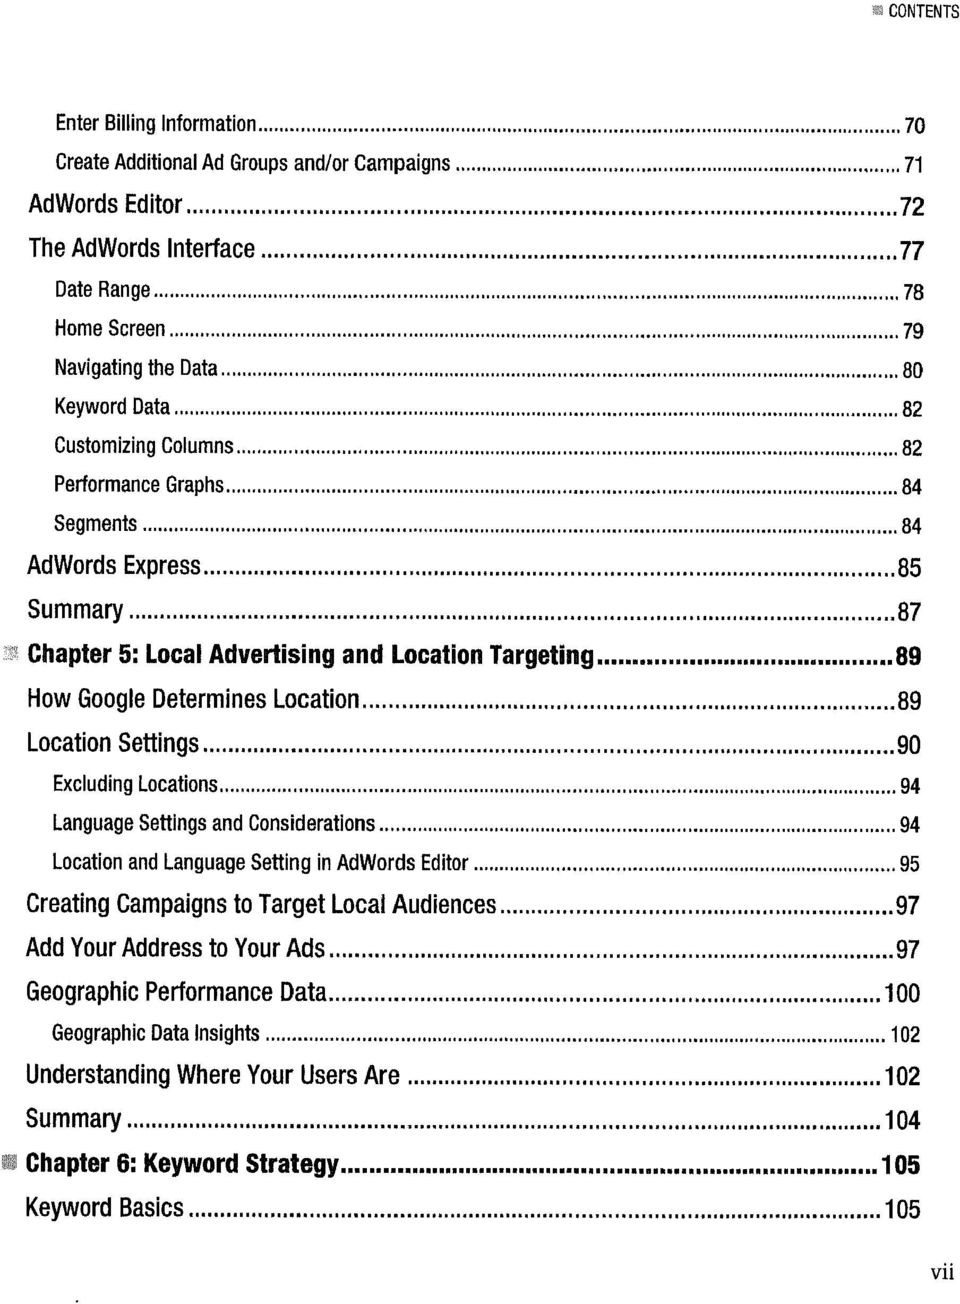 87 a Chapter 5: Local Advertising and Location Targeting 89 How Google Determines Location 89 Location Settings 90 Excluding Locations 94 Language Settings and Considerations 94 Location and